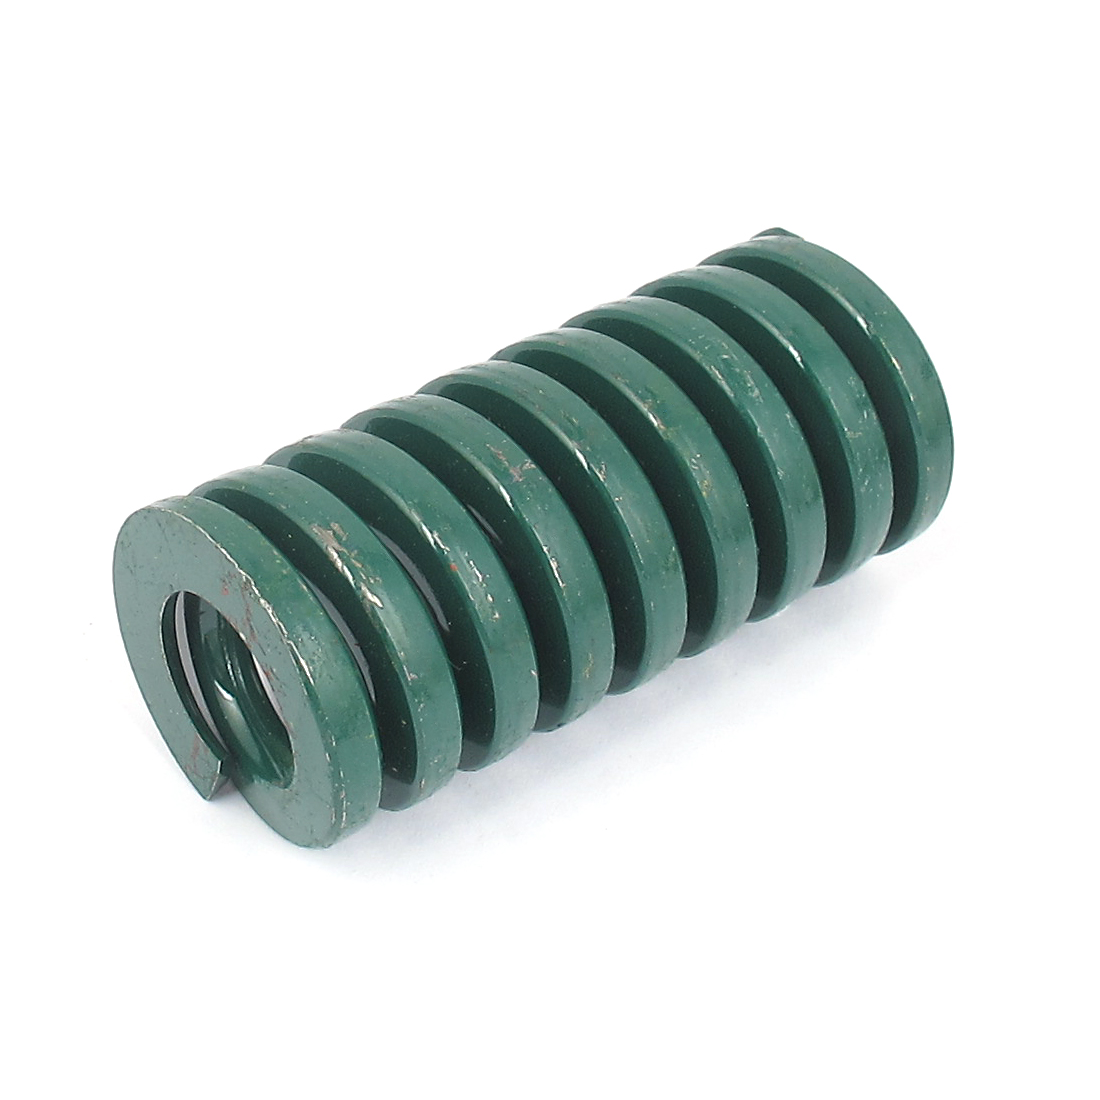 40mmx85mm Chromium Alloy Steel Heavy Load Die Spring Green